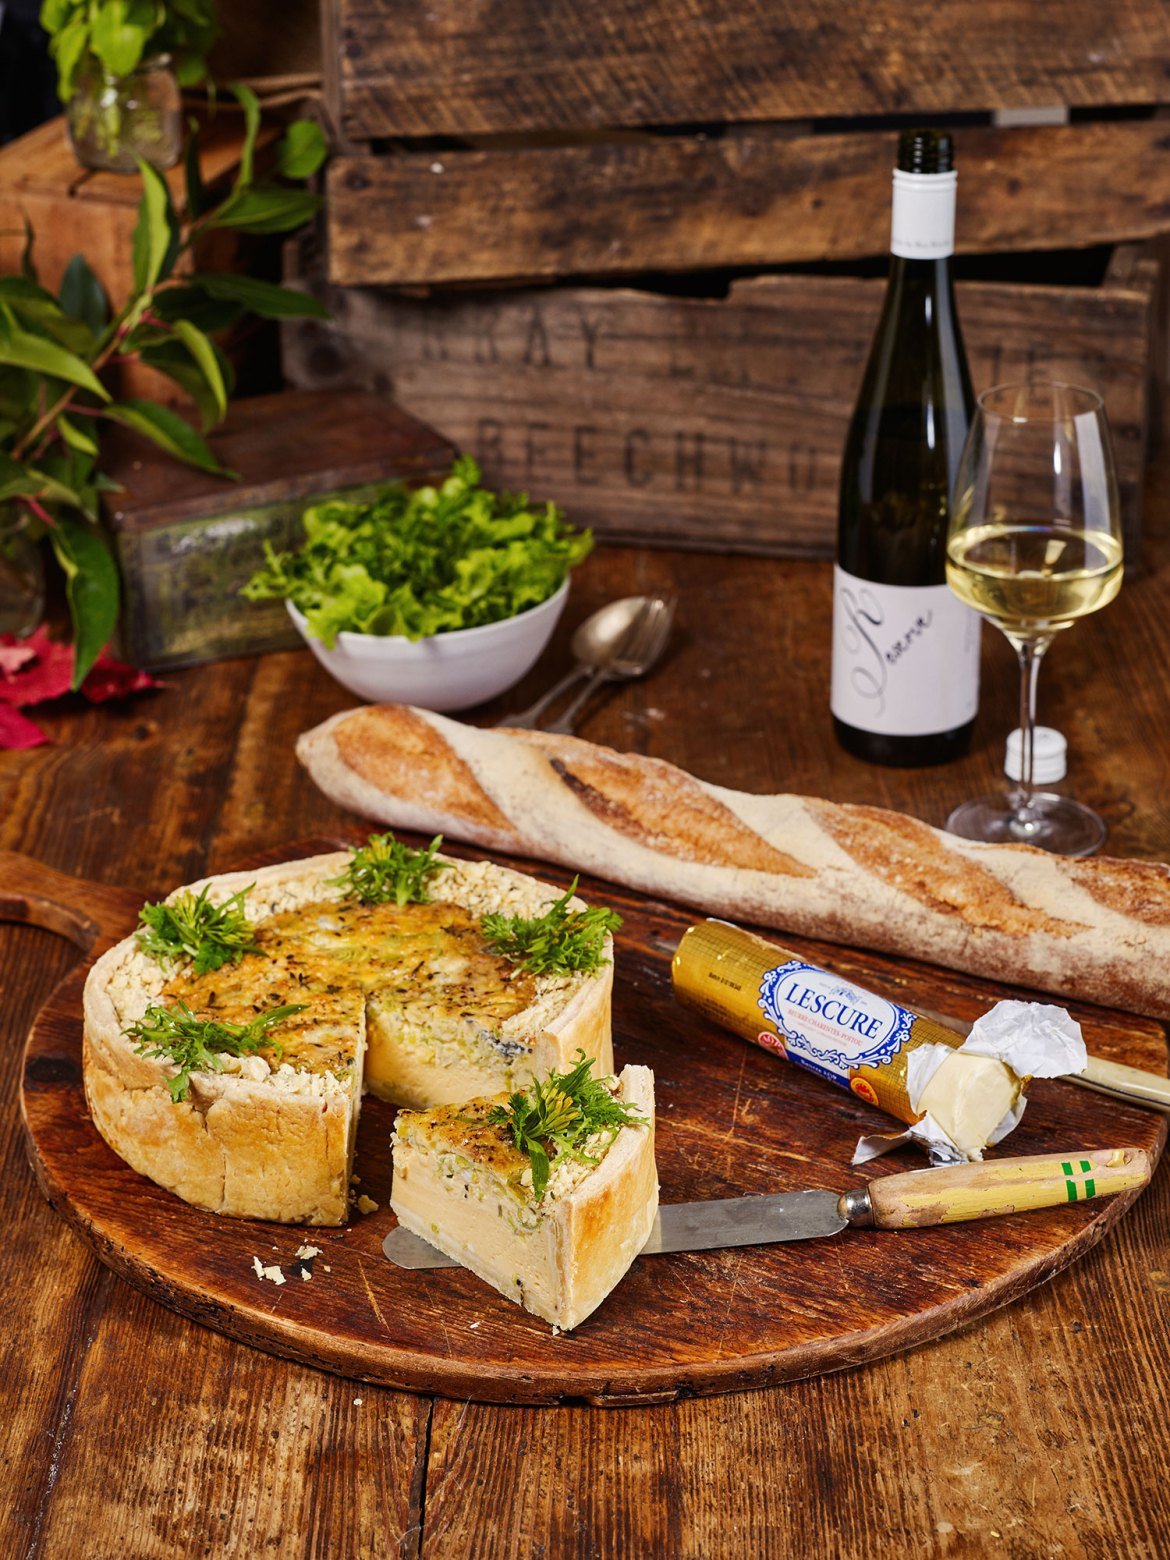 Blue Cheese and Leek Quiche, served wit Rose Ritchie Reserve Gewürztraminer